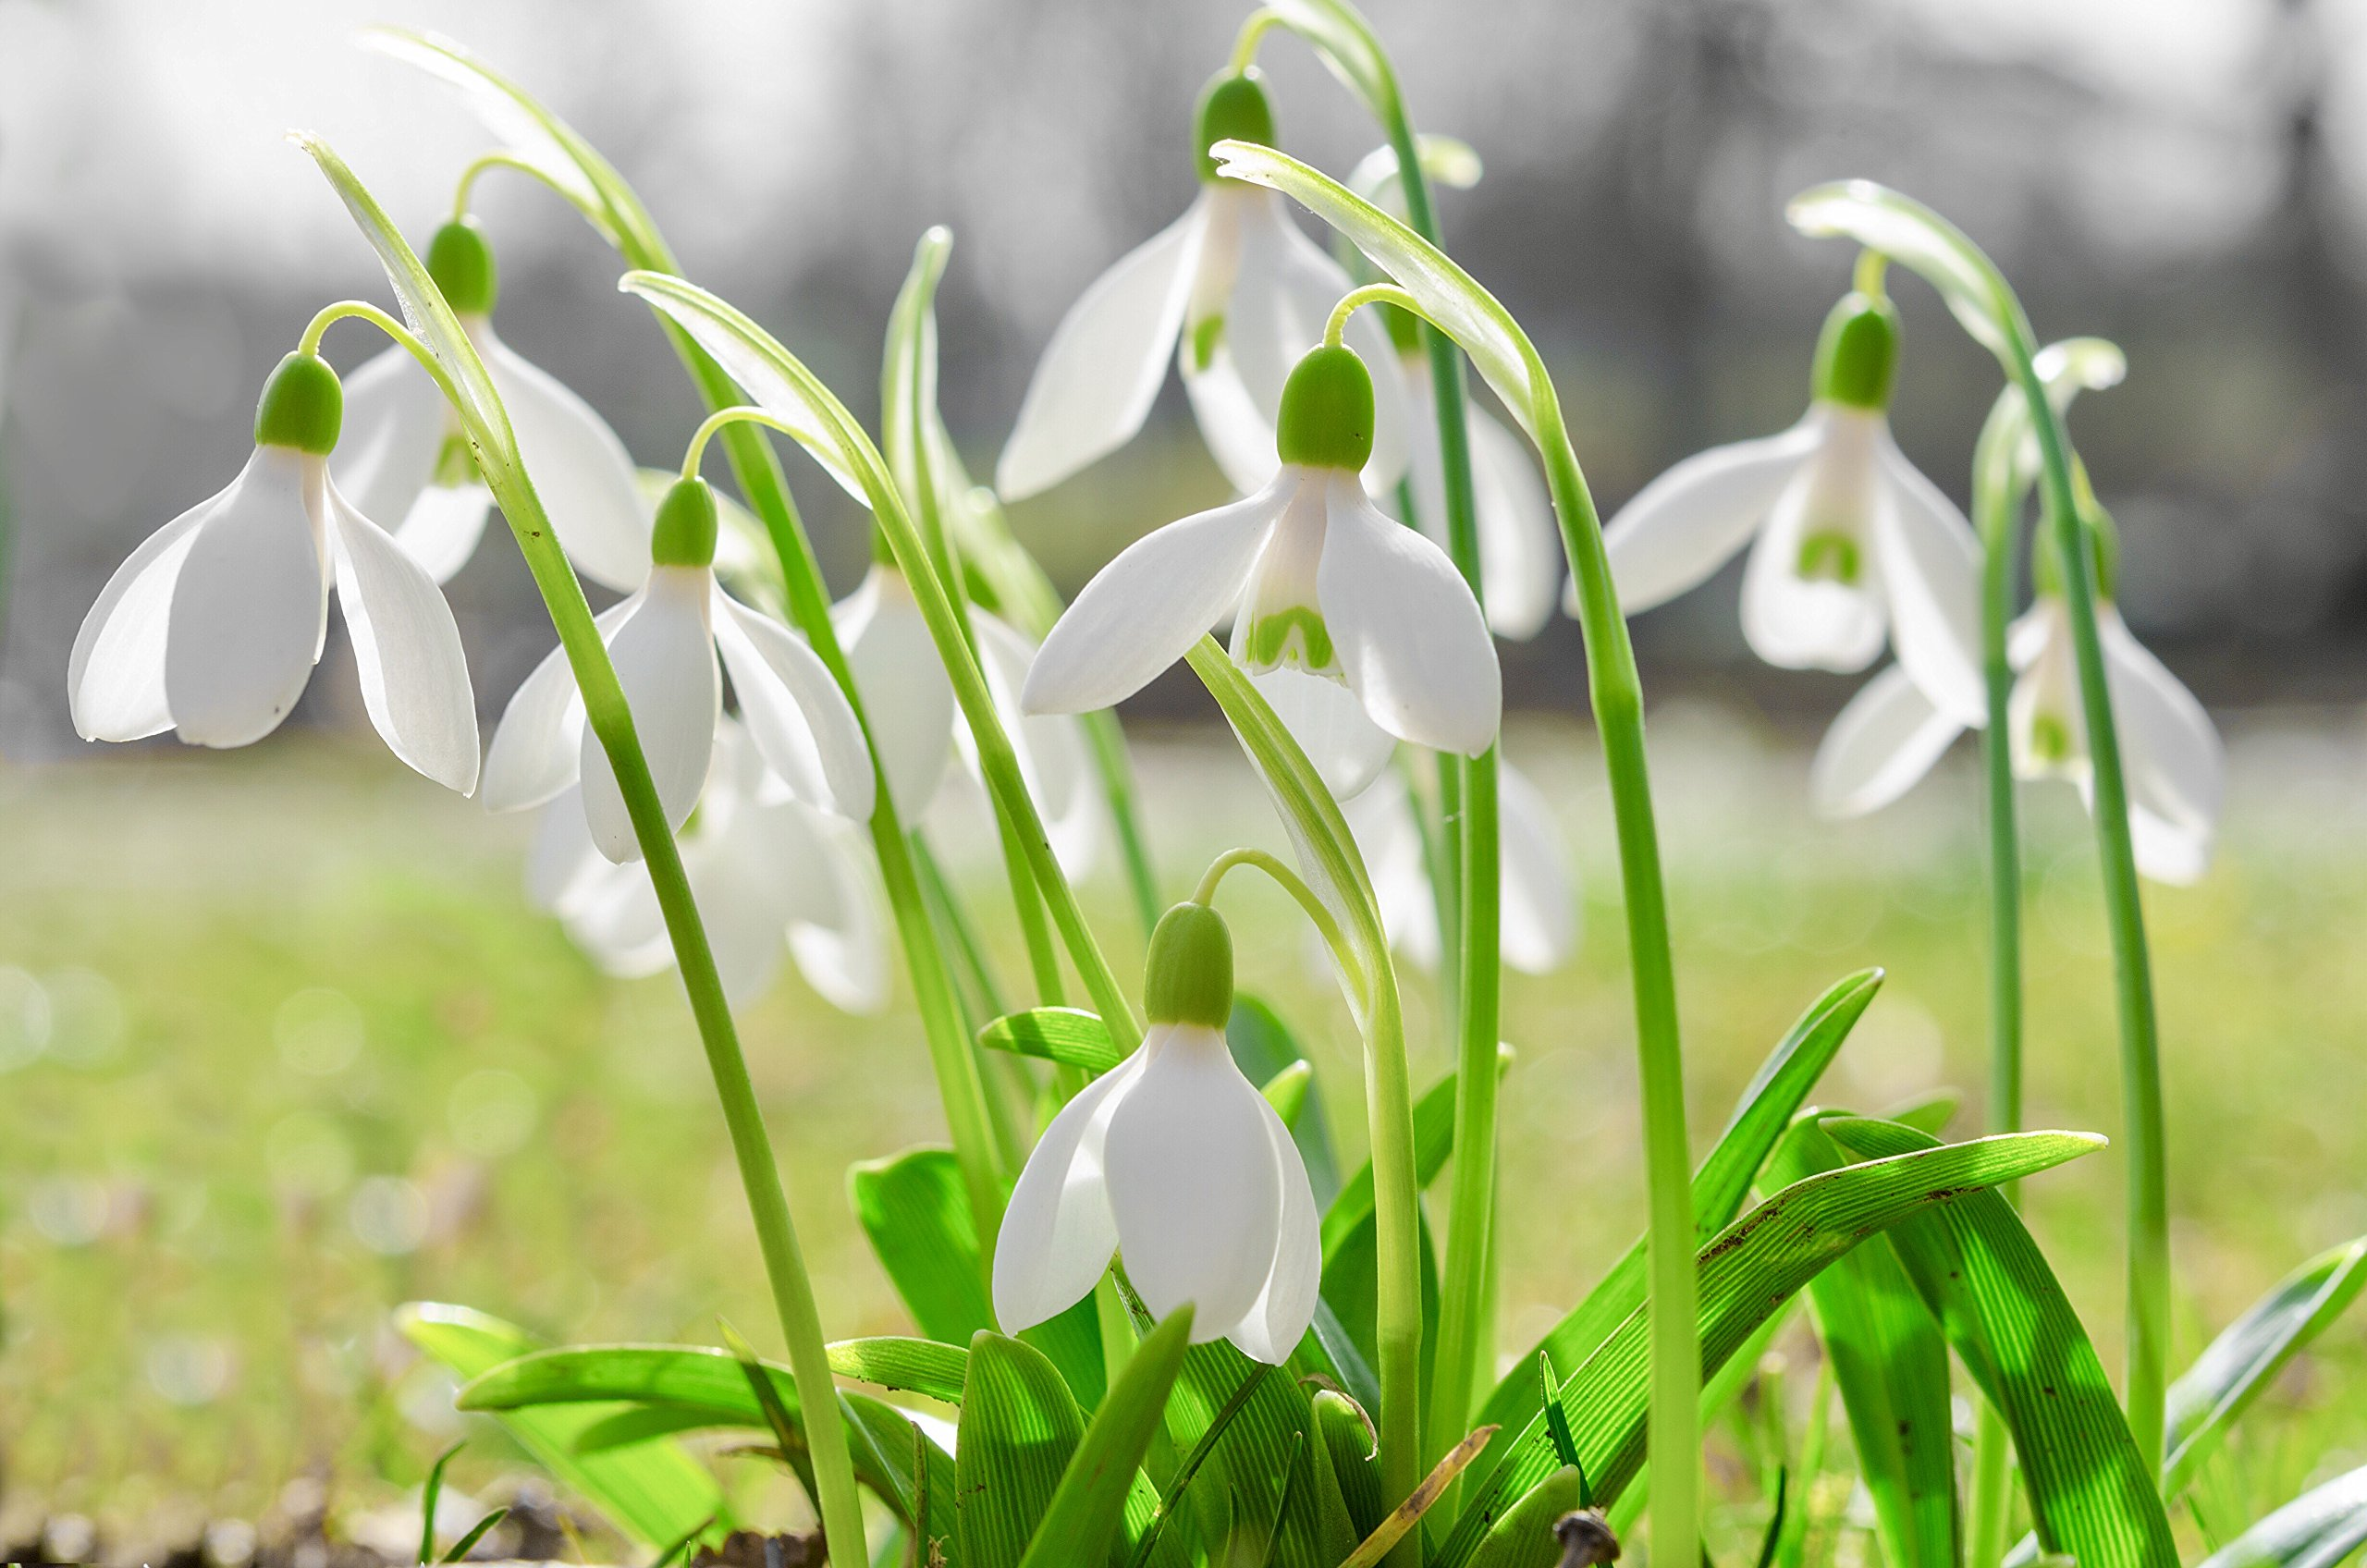 Woodland bulbs® 50 x Single Snowdrops Bulbs - IN THE GREEN Flowering Size Bulbs (Galanthus Nivalis) Plant With Bluebells & Aconites - FREE UK P&P ®